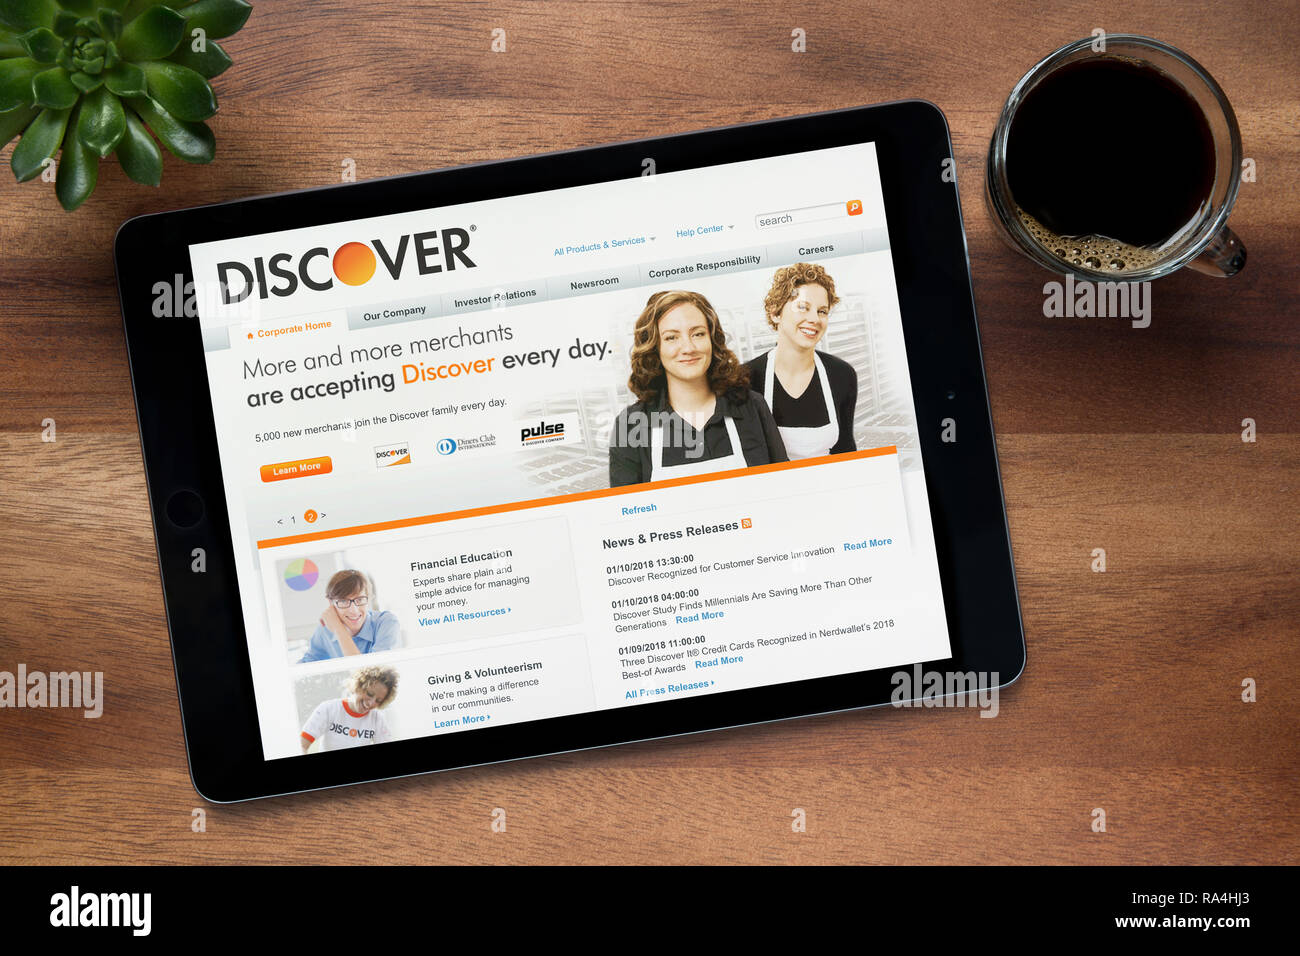 The website of Discover.com is seen on an iPad tablet, on a wooden table along with an espresso coffee and a house plant (Editorial use only). - Stock Image